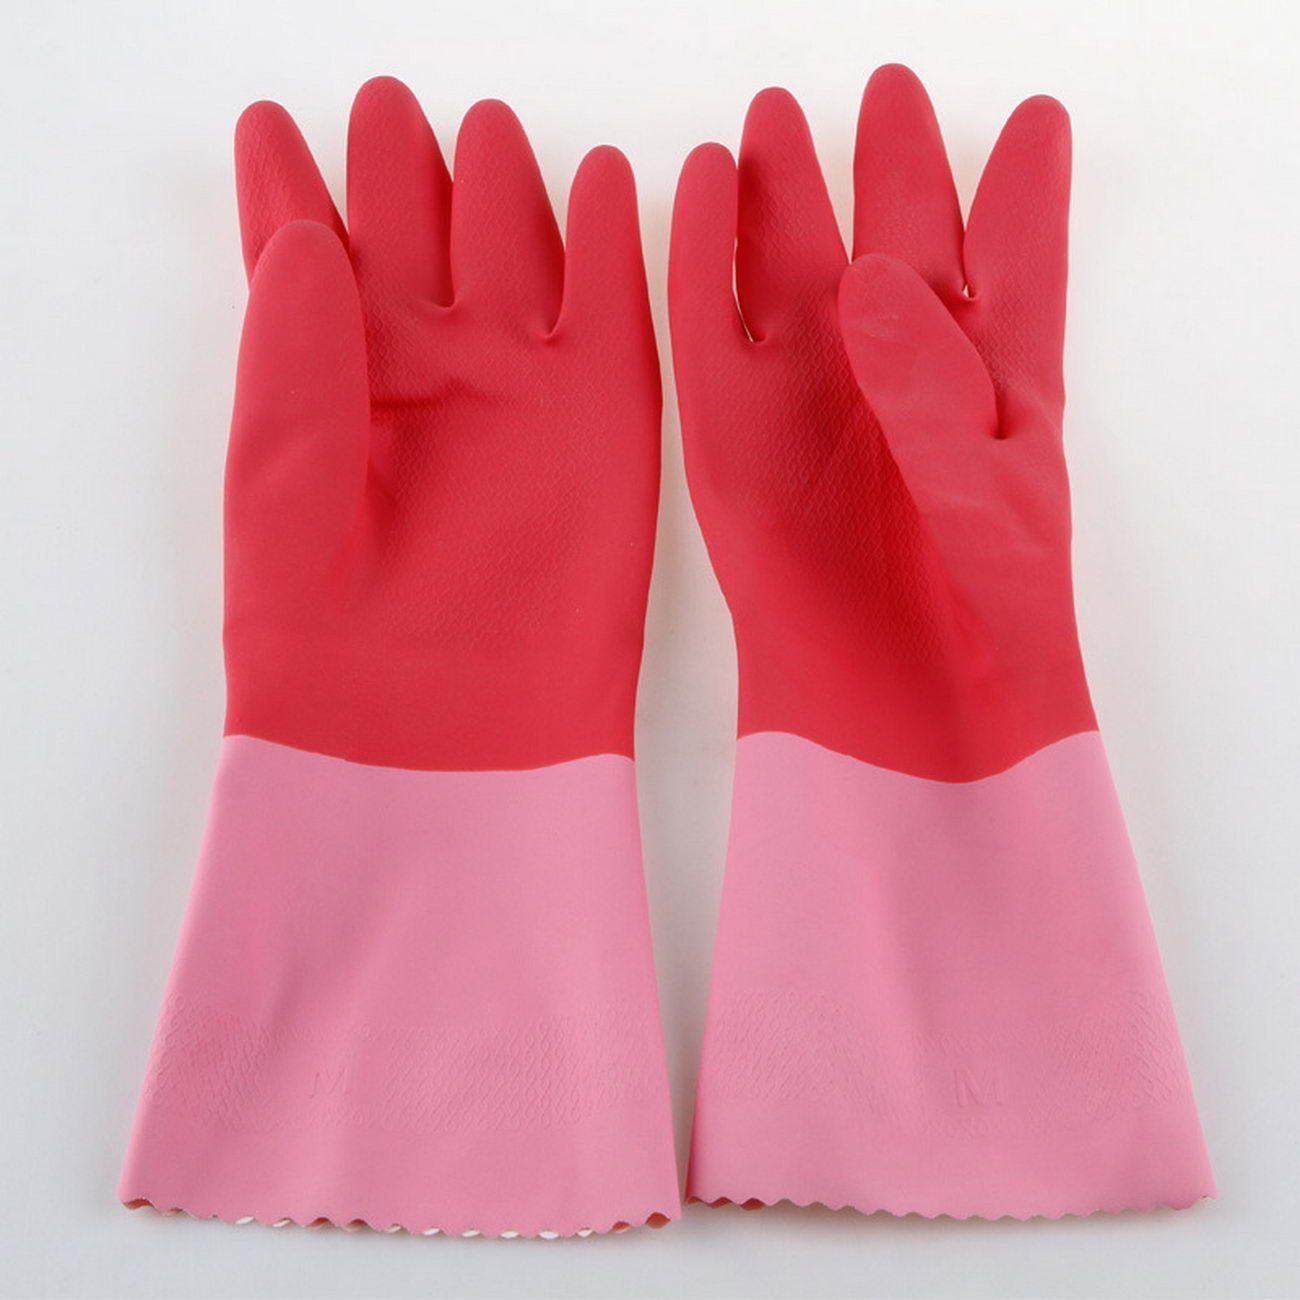 jii2030shann durable glove housework clean gloves medium and tough and durable household cleaning, household cleaning gloves, cashmere gloves, dishwashing gloves, household gloves, cleaning gloves